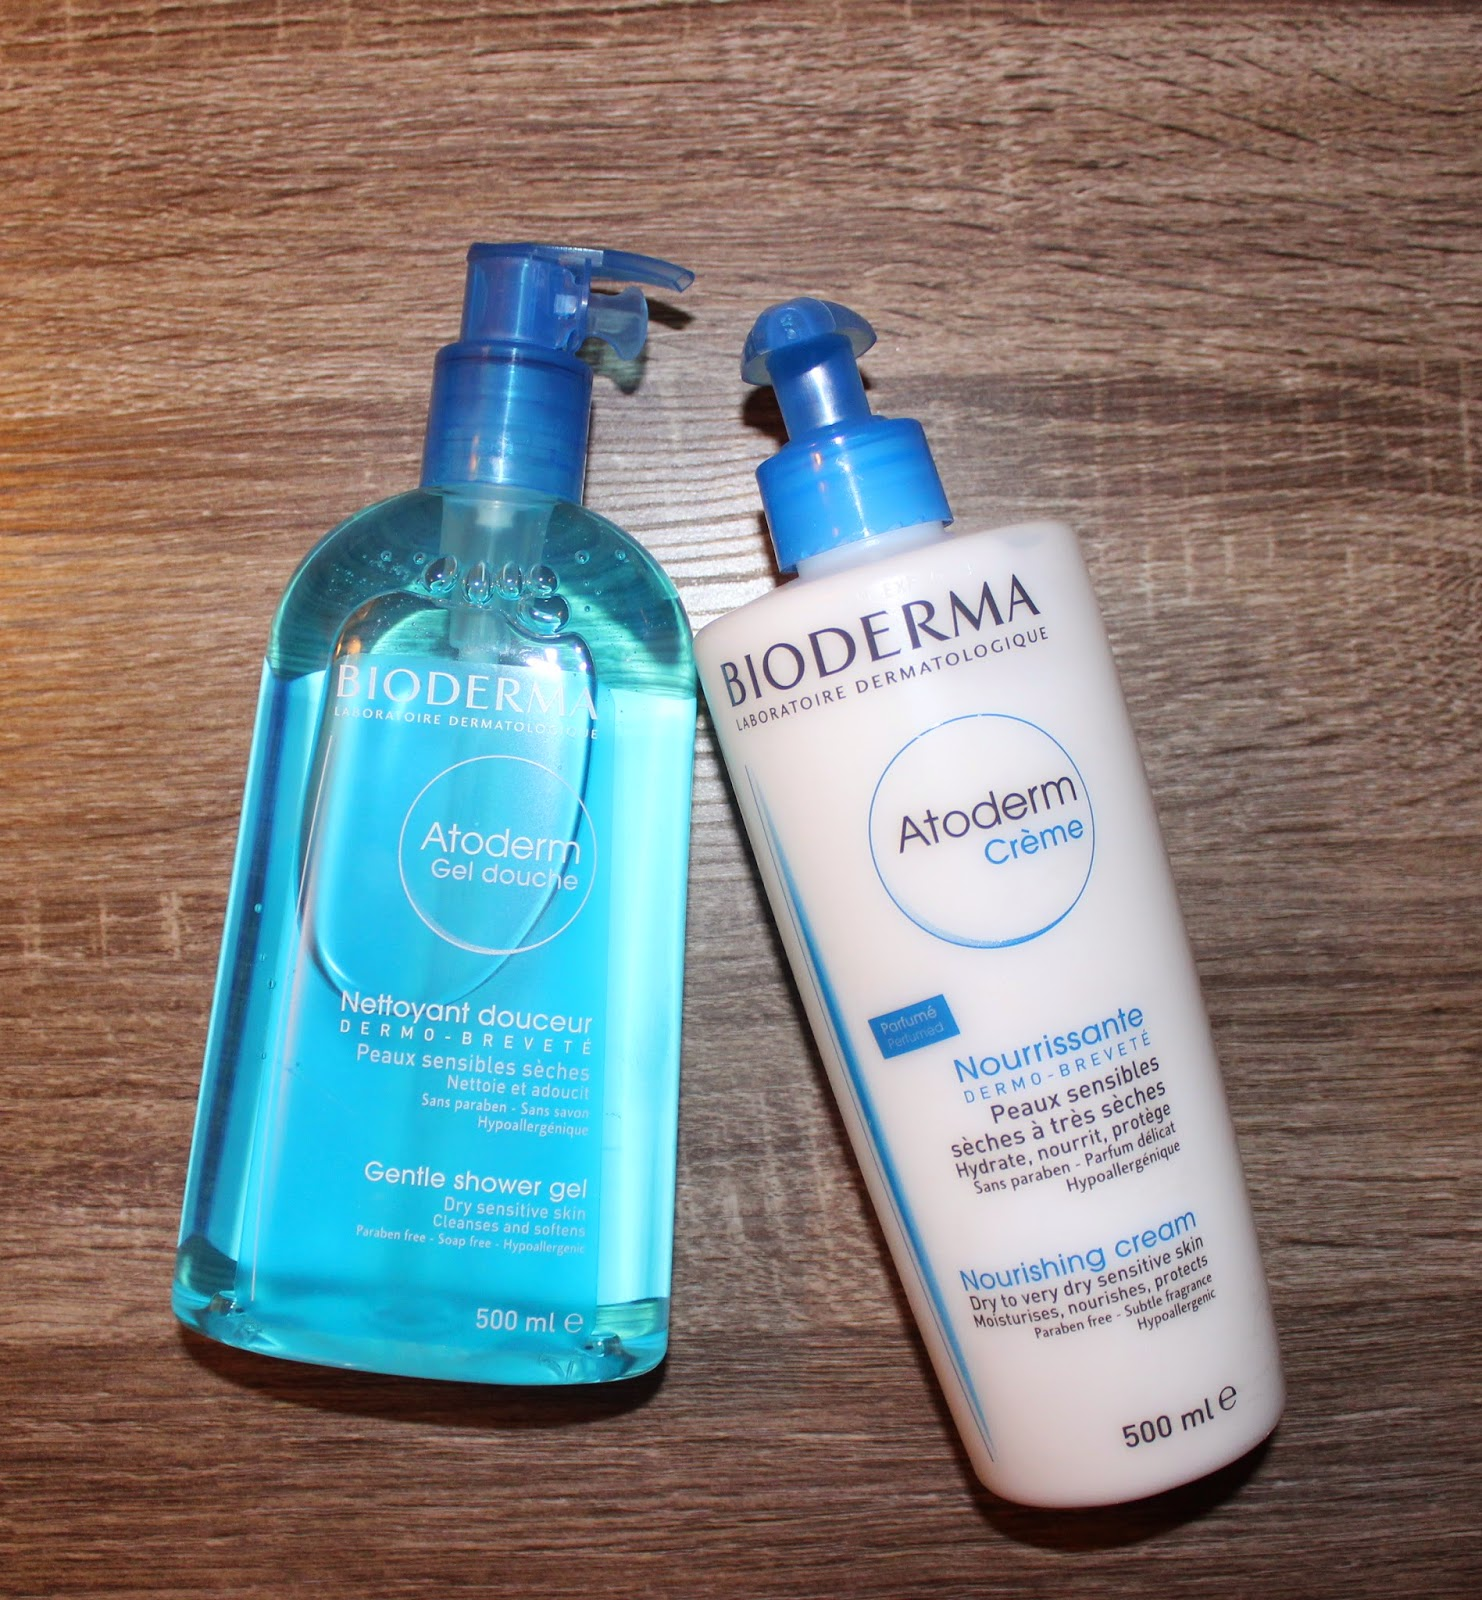 Bioderma Atoderm Gentle Shower Gel & Nourishing Cream